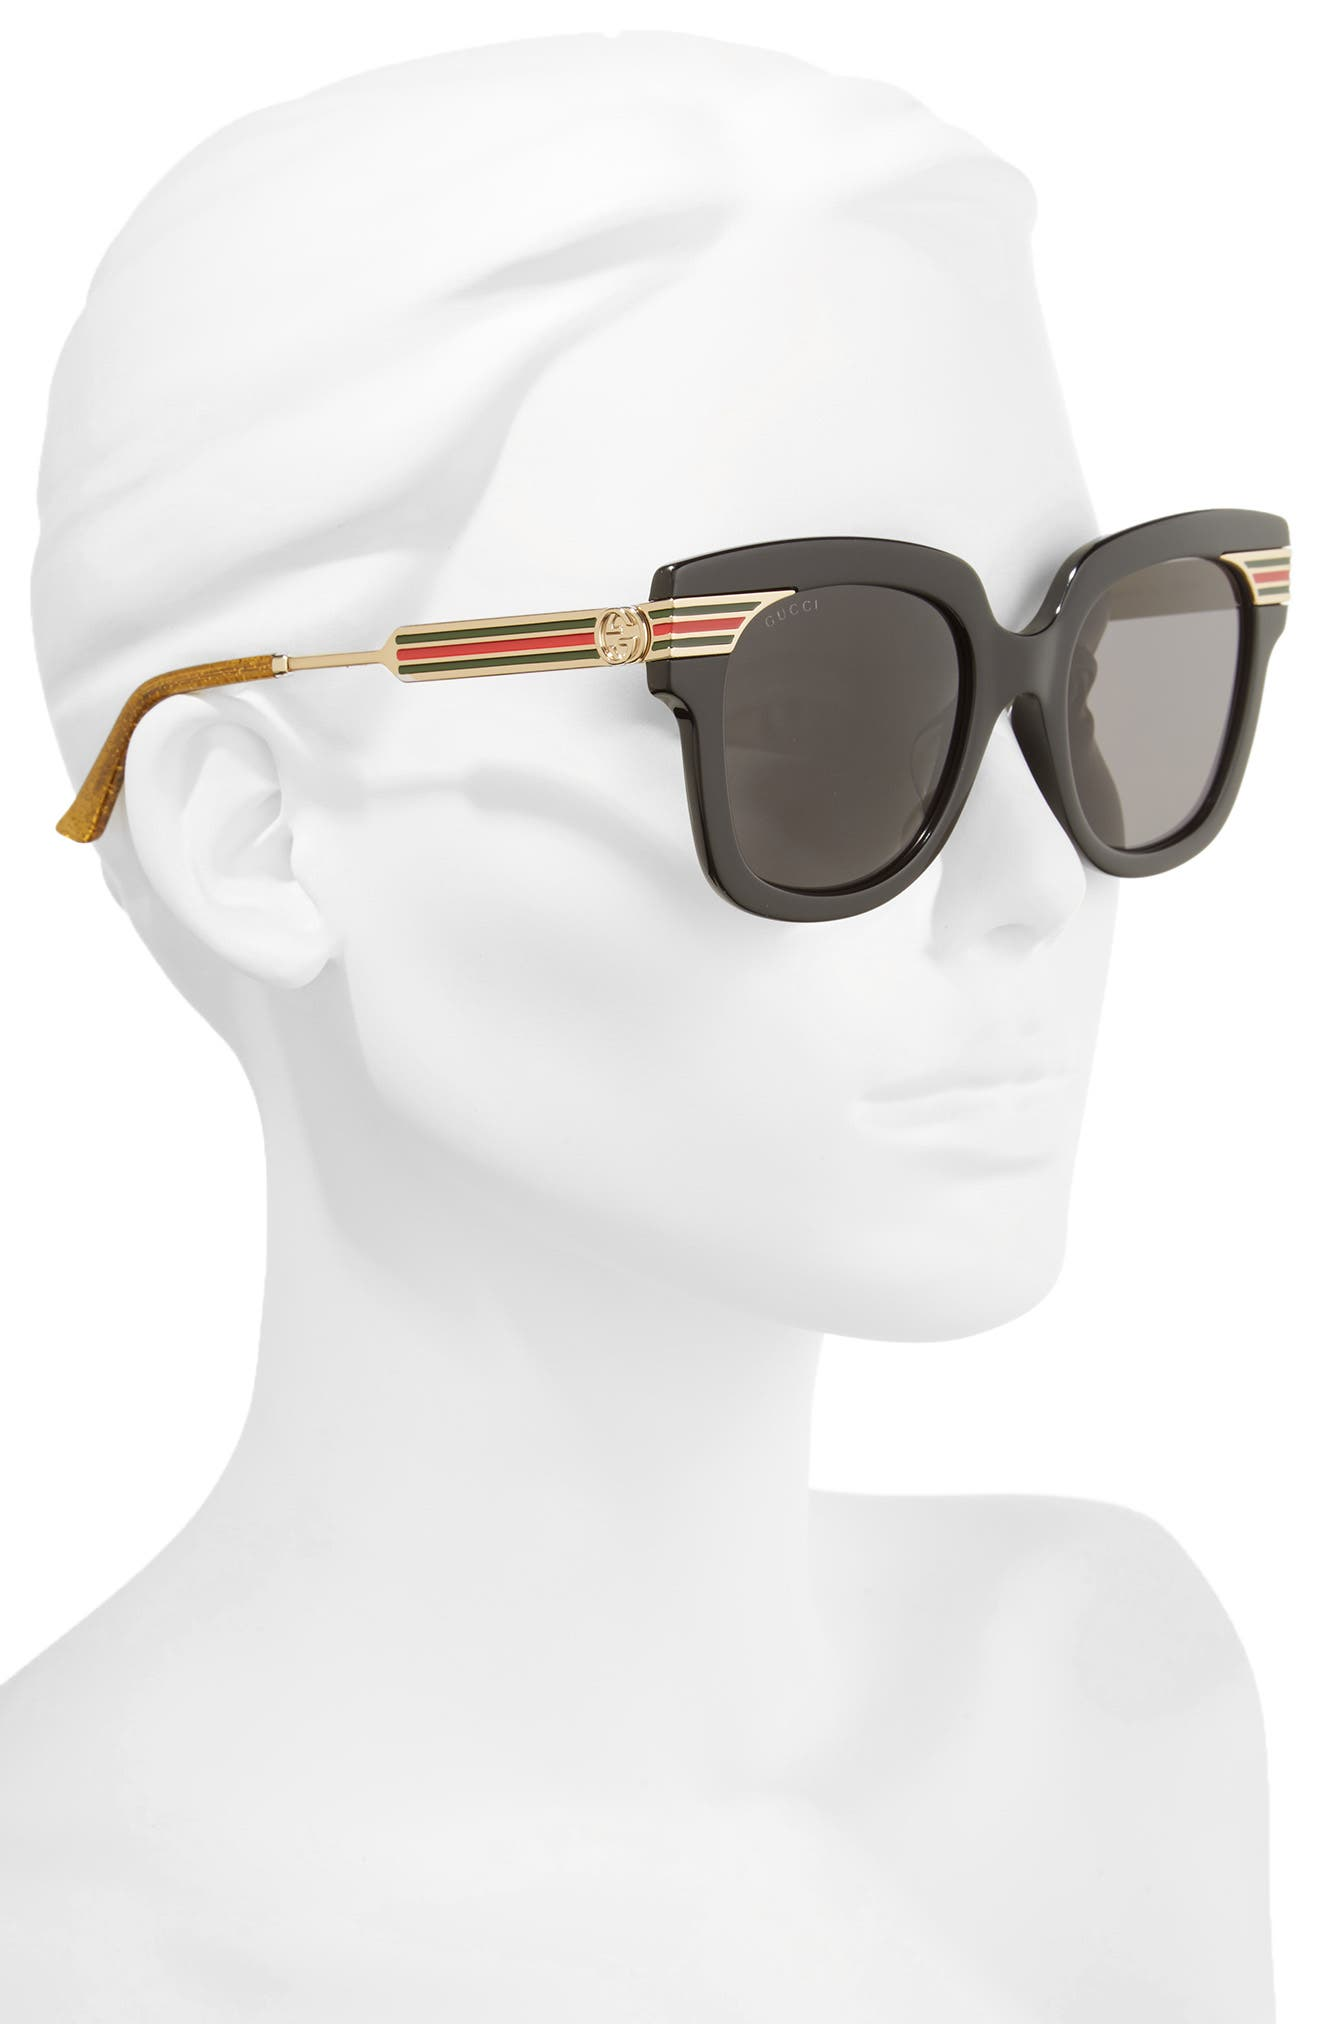 51mm Cat Eye Sunglasses,                             Alternate thumbnail 2, color,                             Black/ Gold